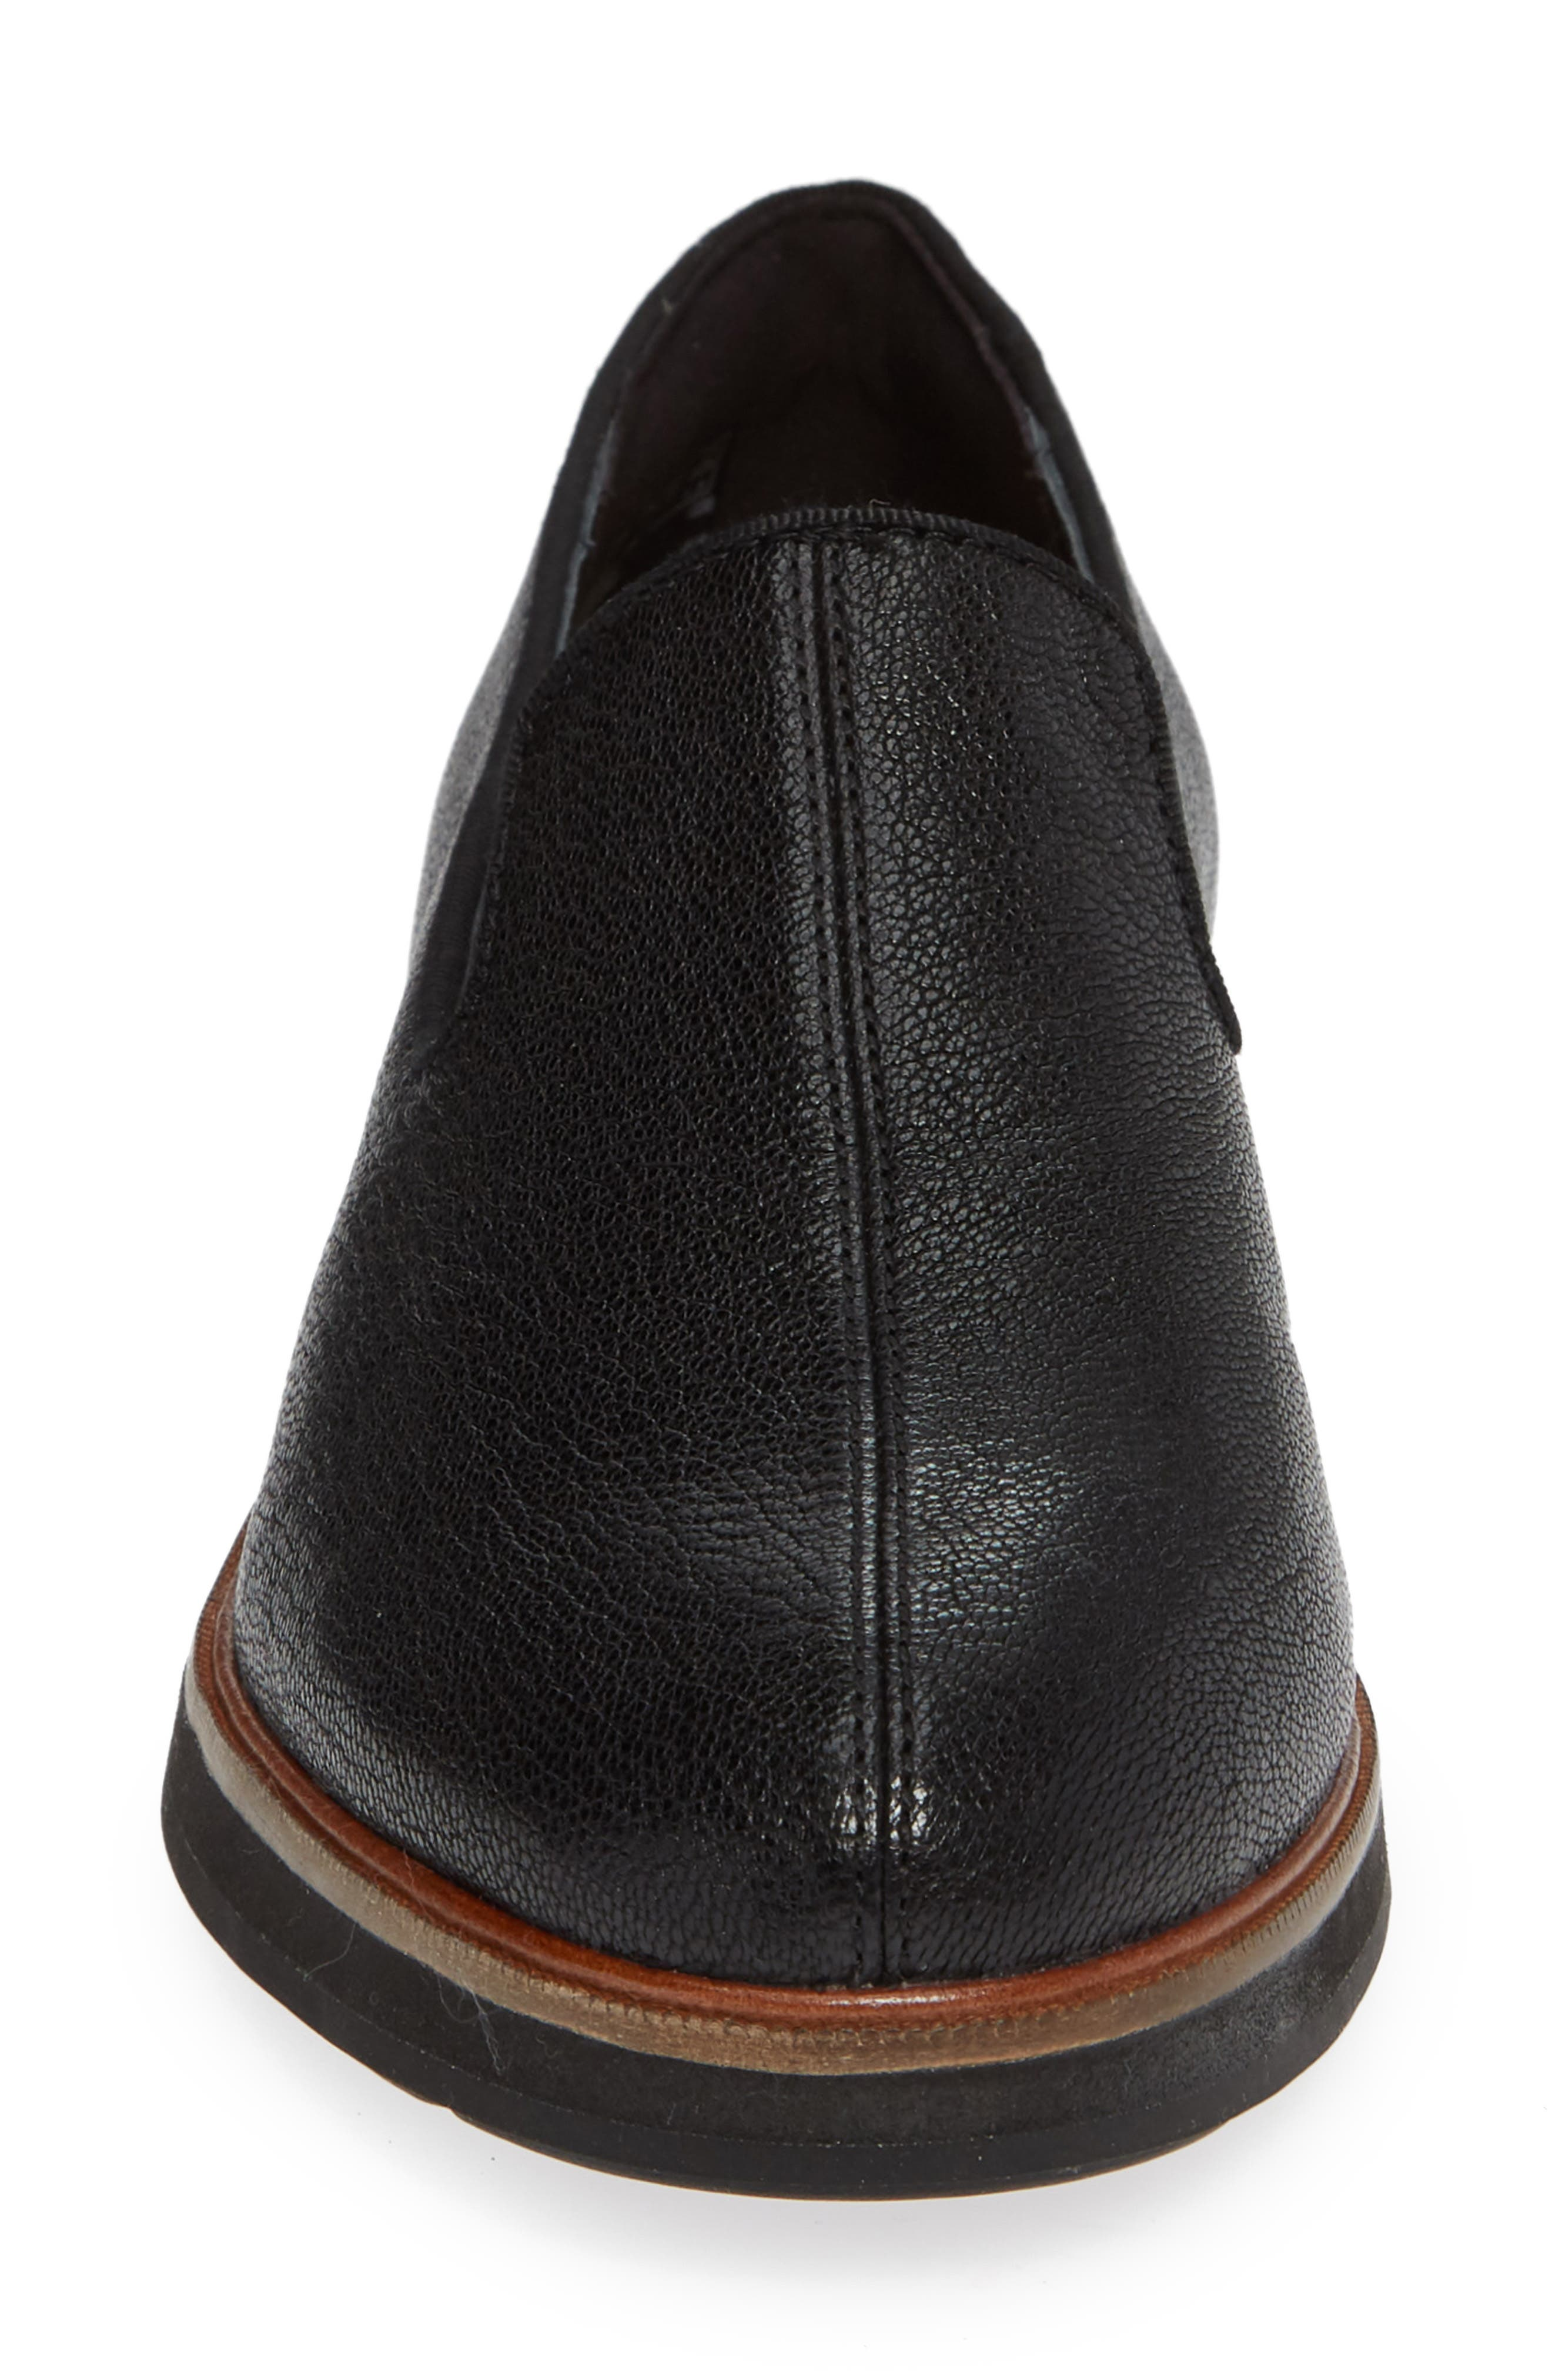 CLARKS<SUP>®</SUP>, Frida Loafer, Alternate thumbnail 4, color, BLACK TUMBLED LEATHER